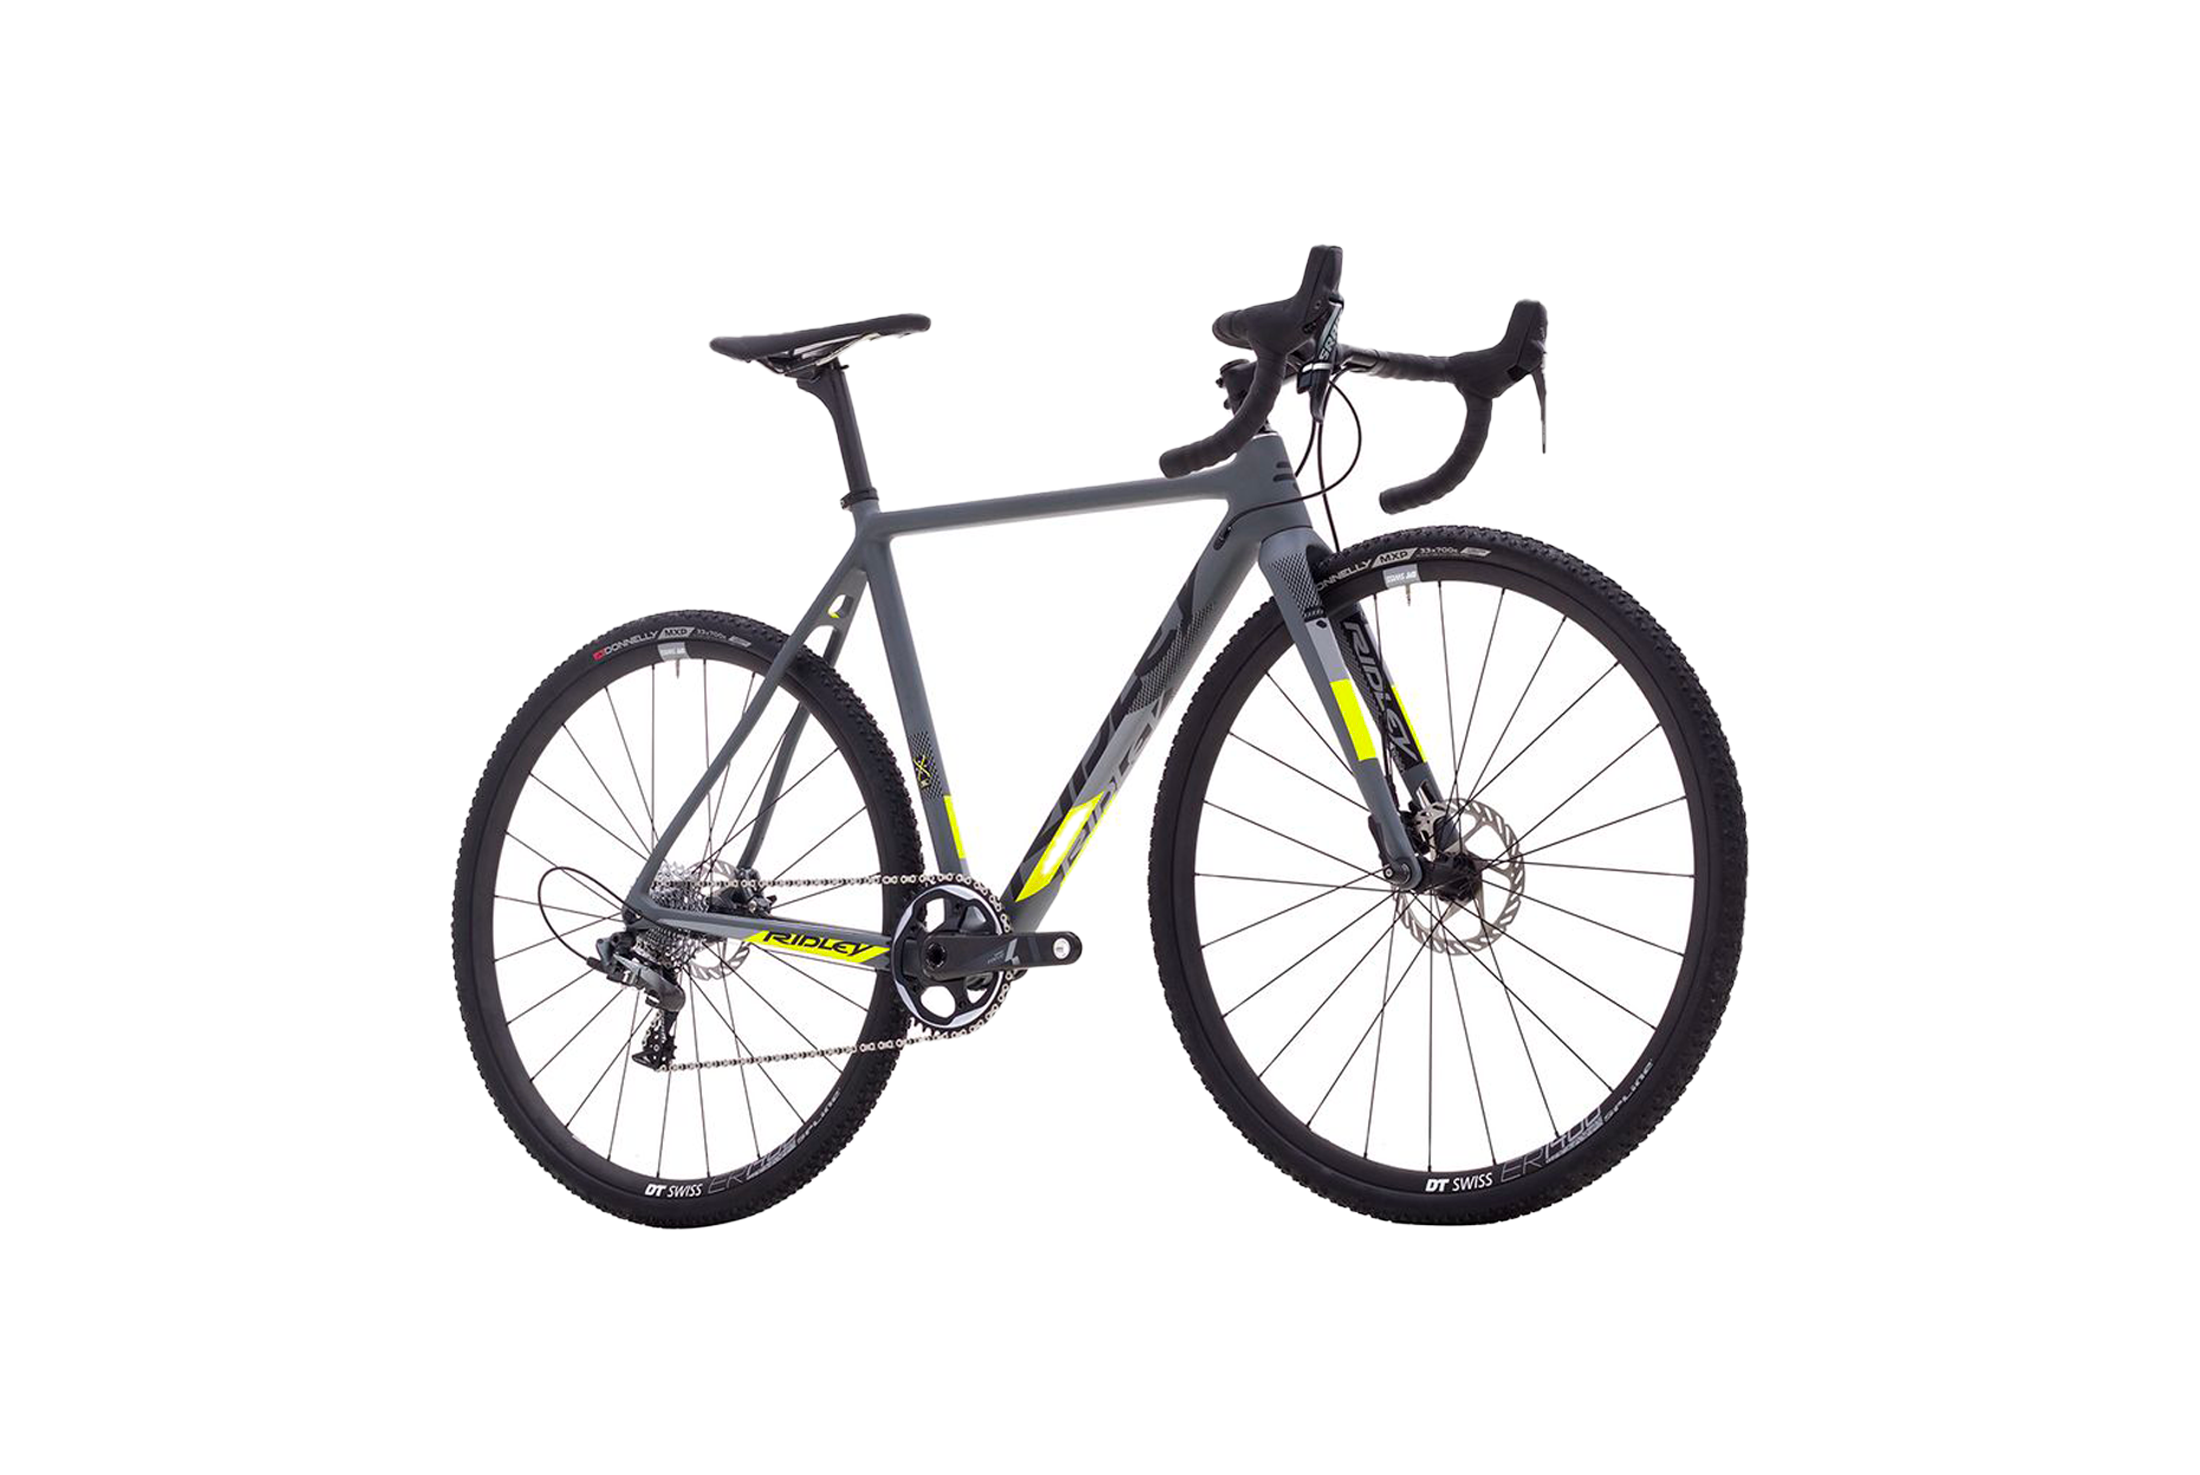 RIDLEY X-Night SL Disc Force 1 Cyclocross Bike